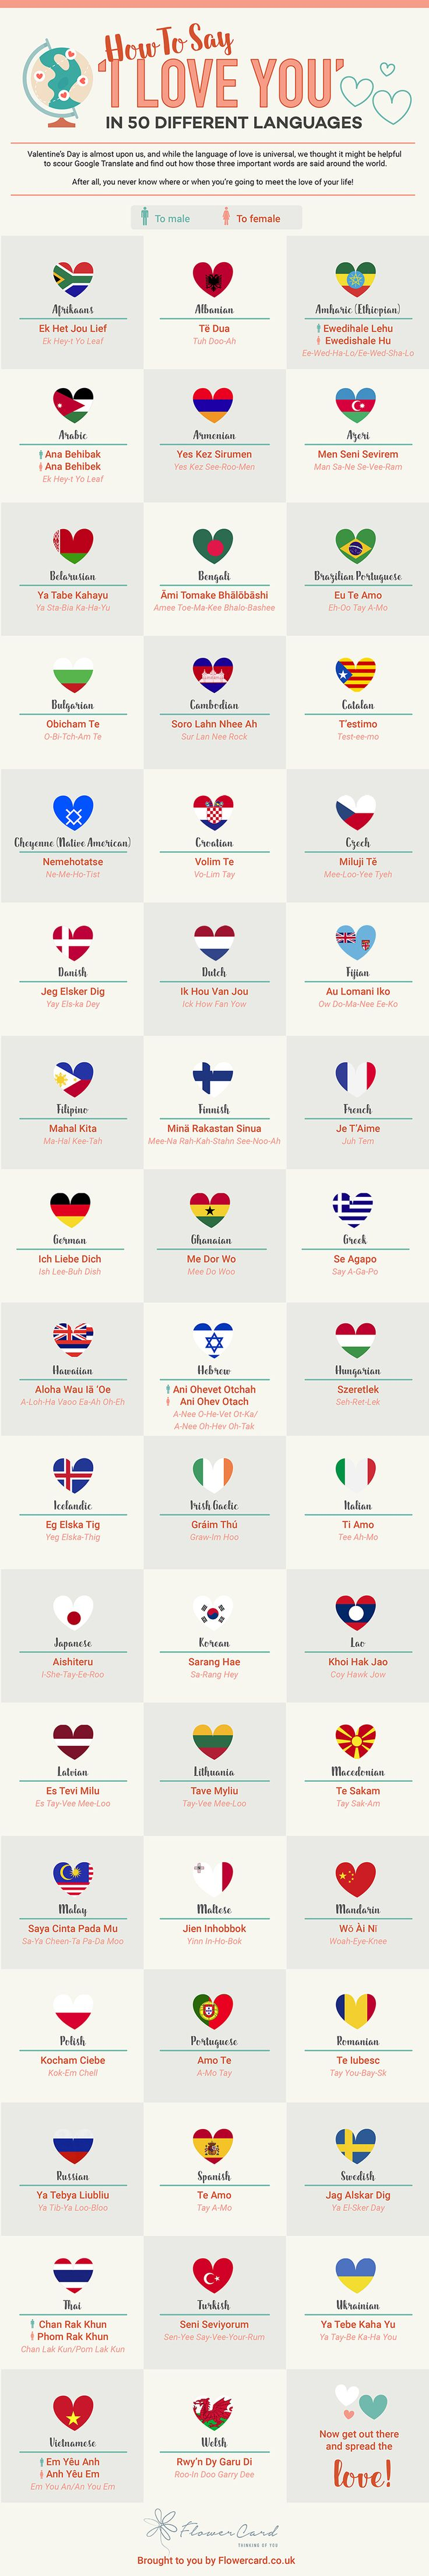 "How to say ""I love you"" in 50 different languages [INFOGRAPHIC] - Matador Network"